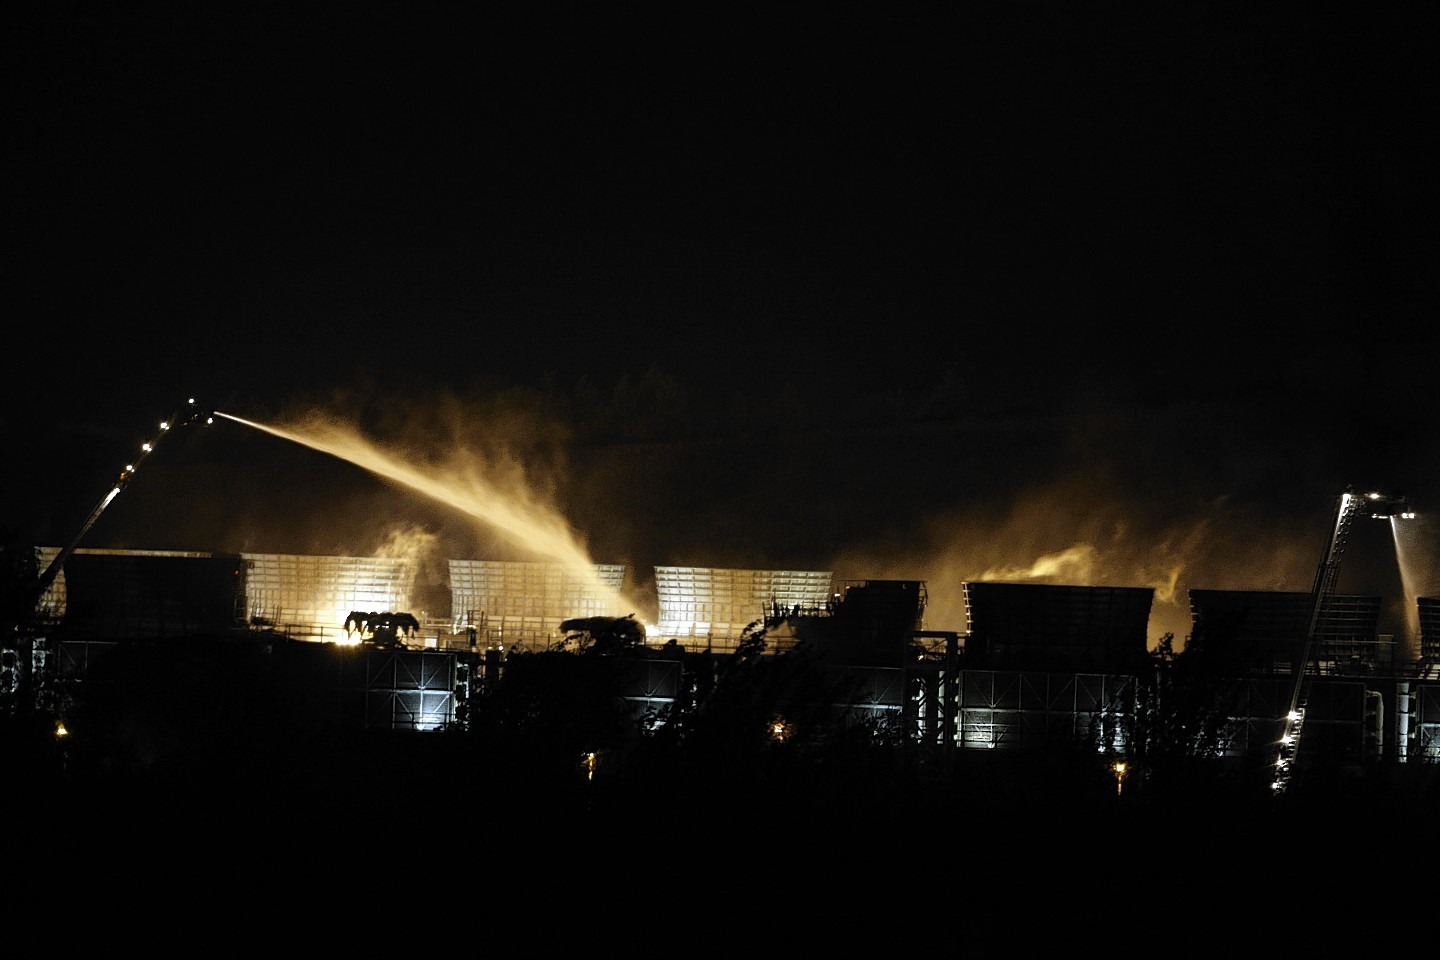 Fire crews spray water at the scene of a fire at Didcot B Power Station in Oxfordshire.